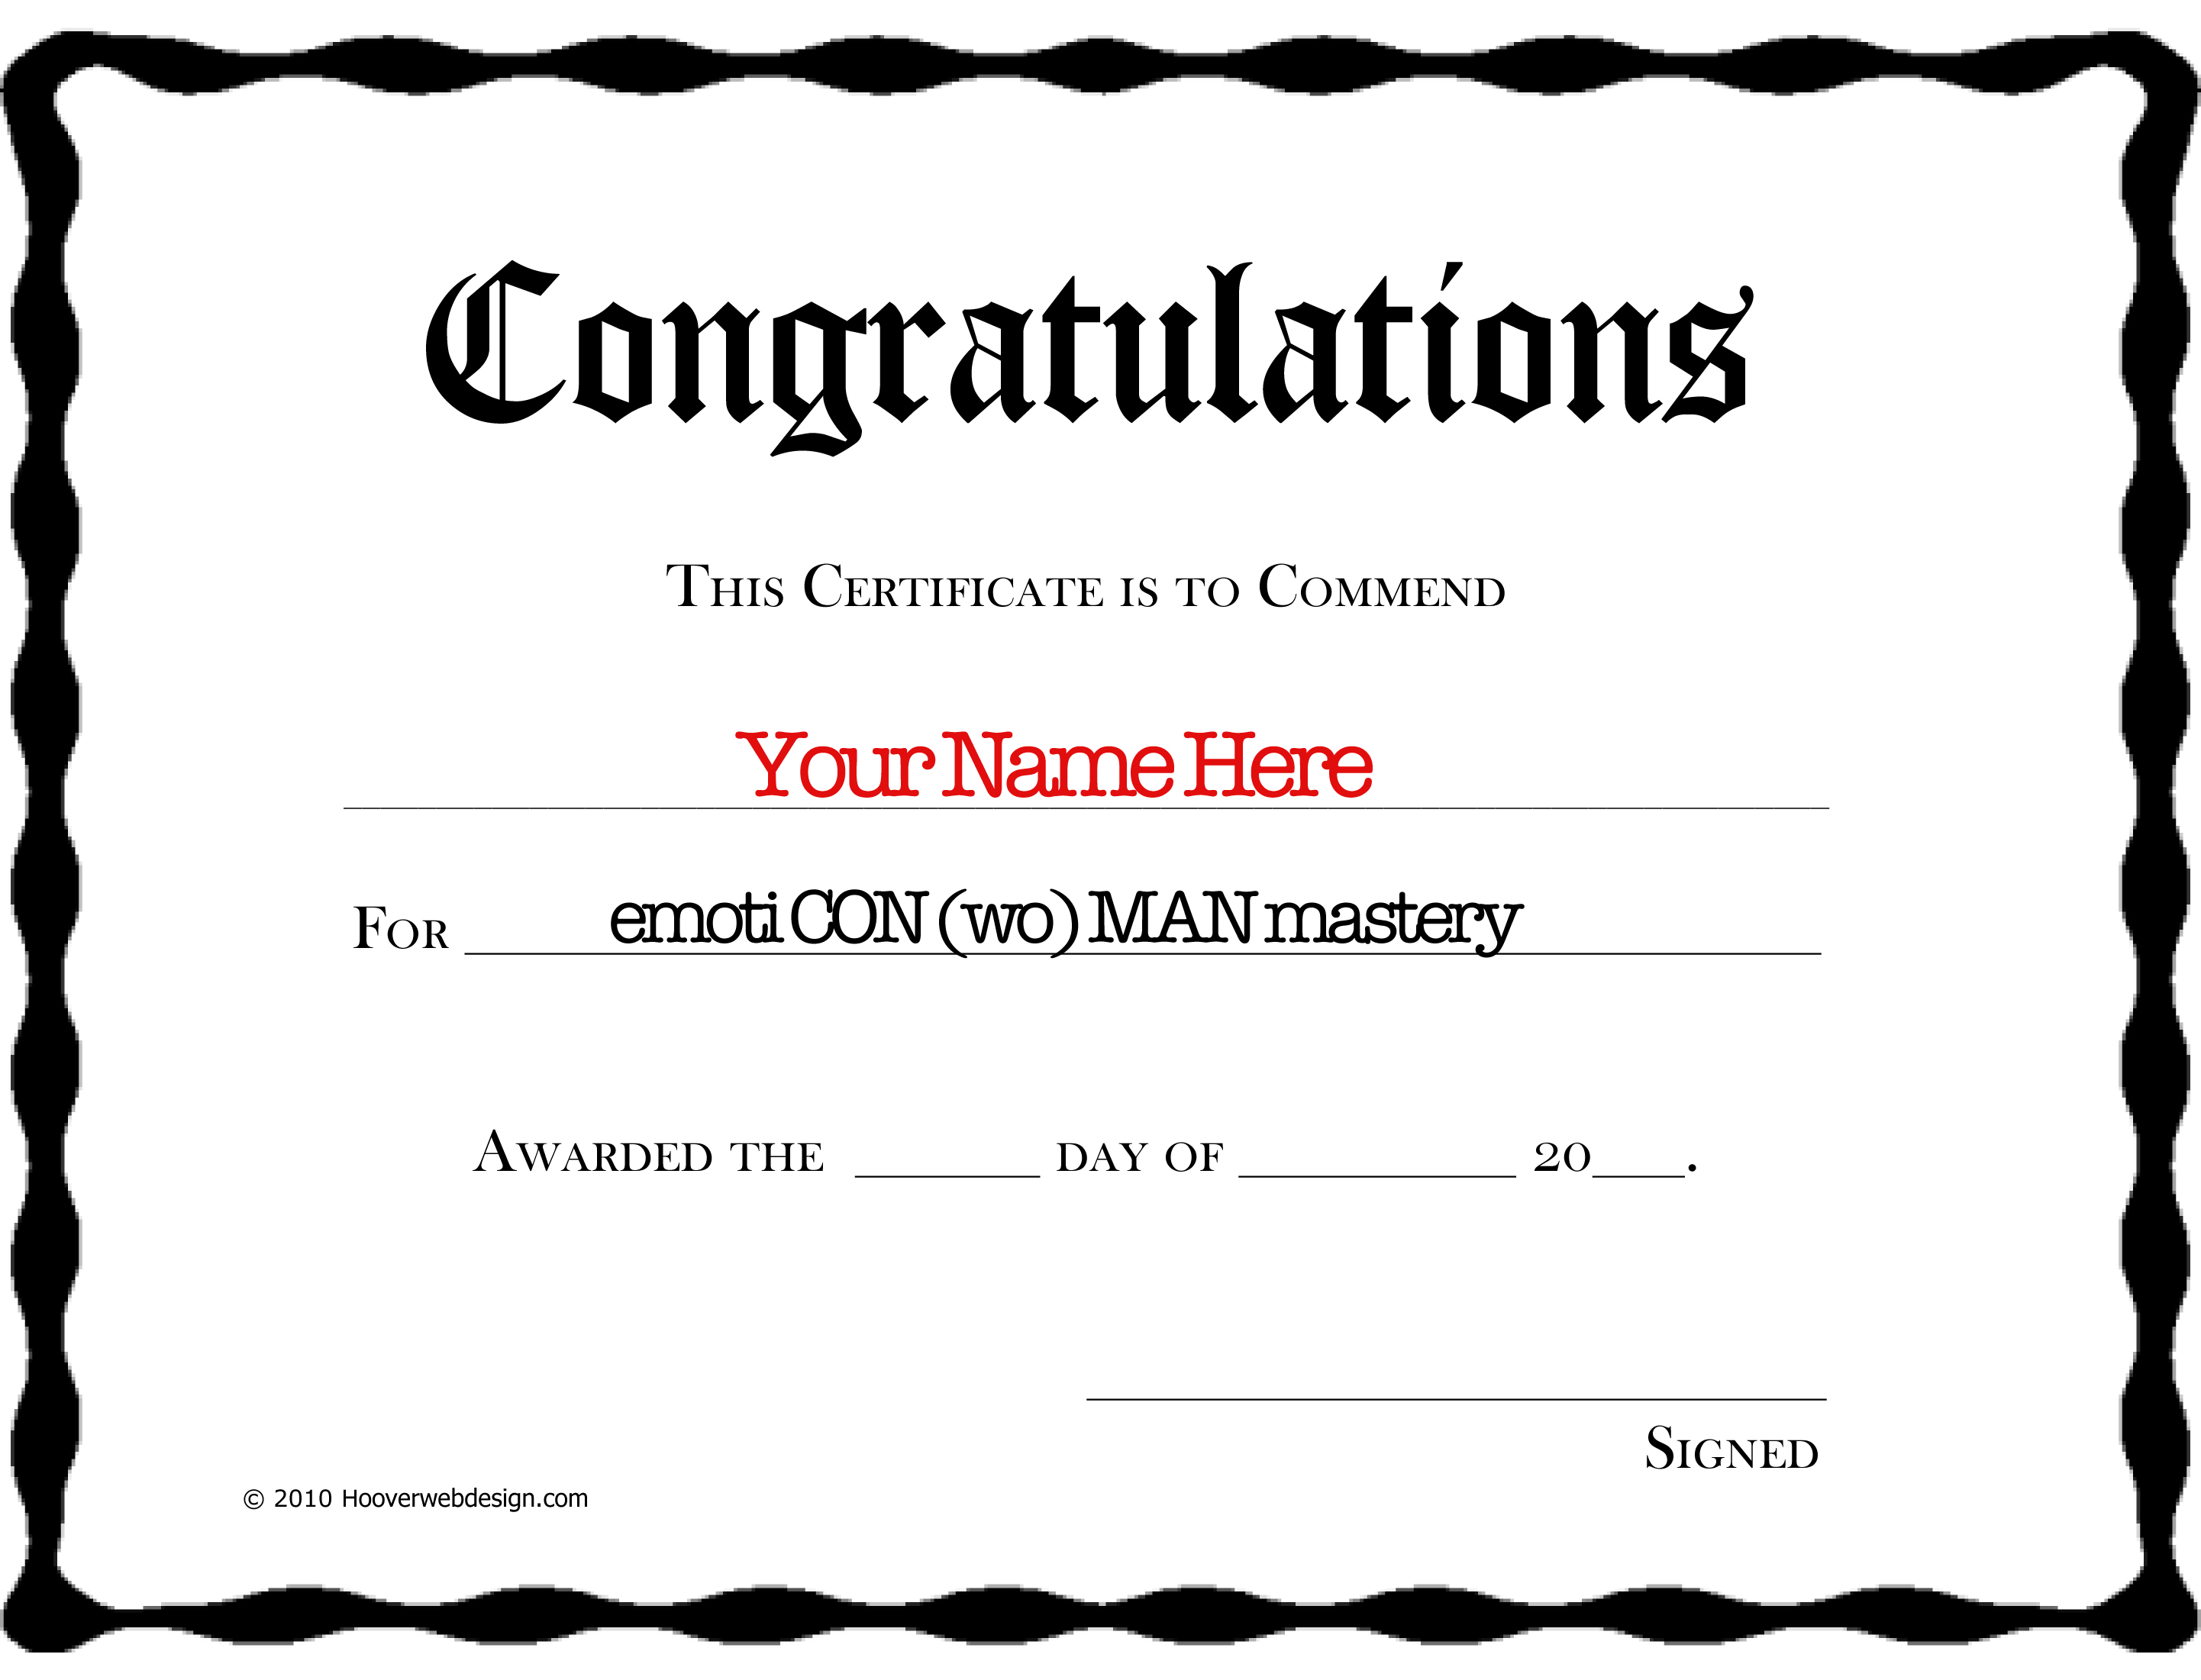 You Did It Printable Awards Pictures to Pin PinsDaddy – Printable Congratulations Certificate